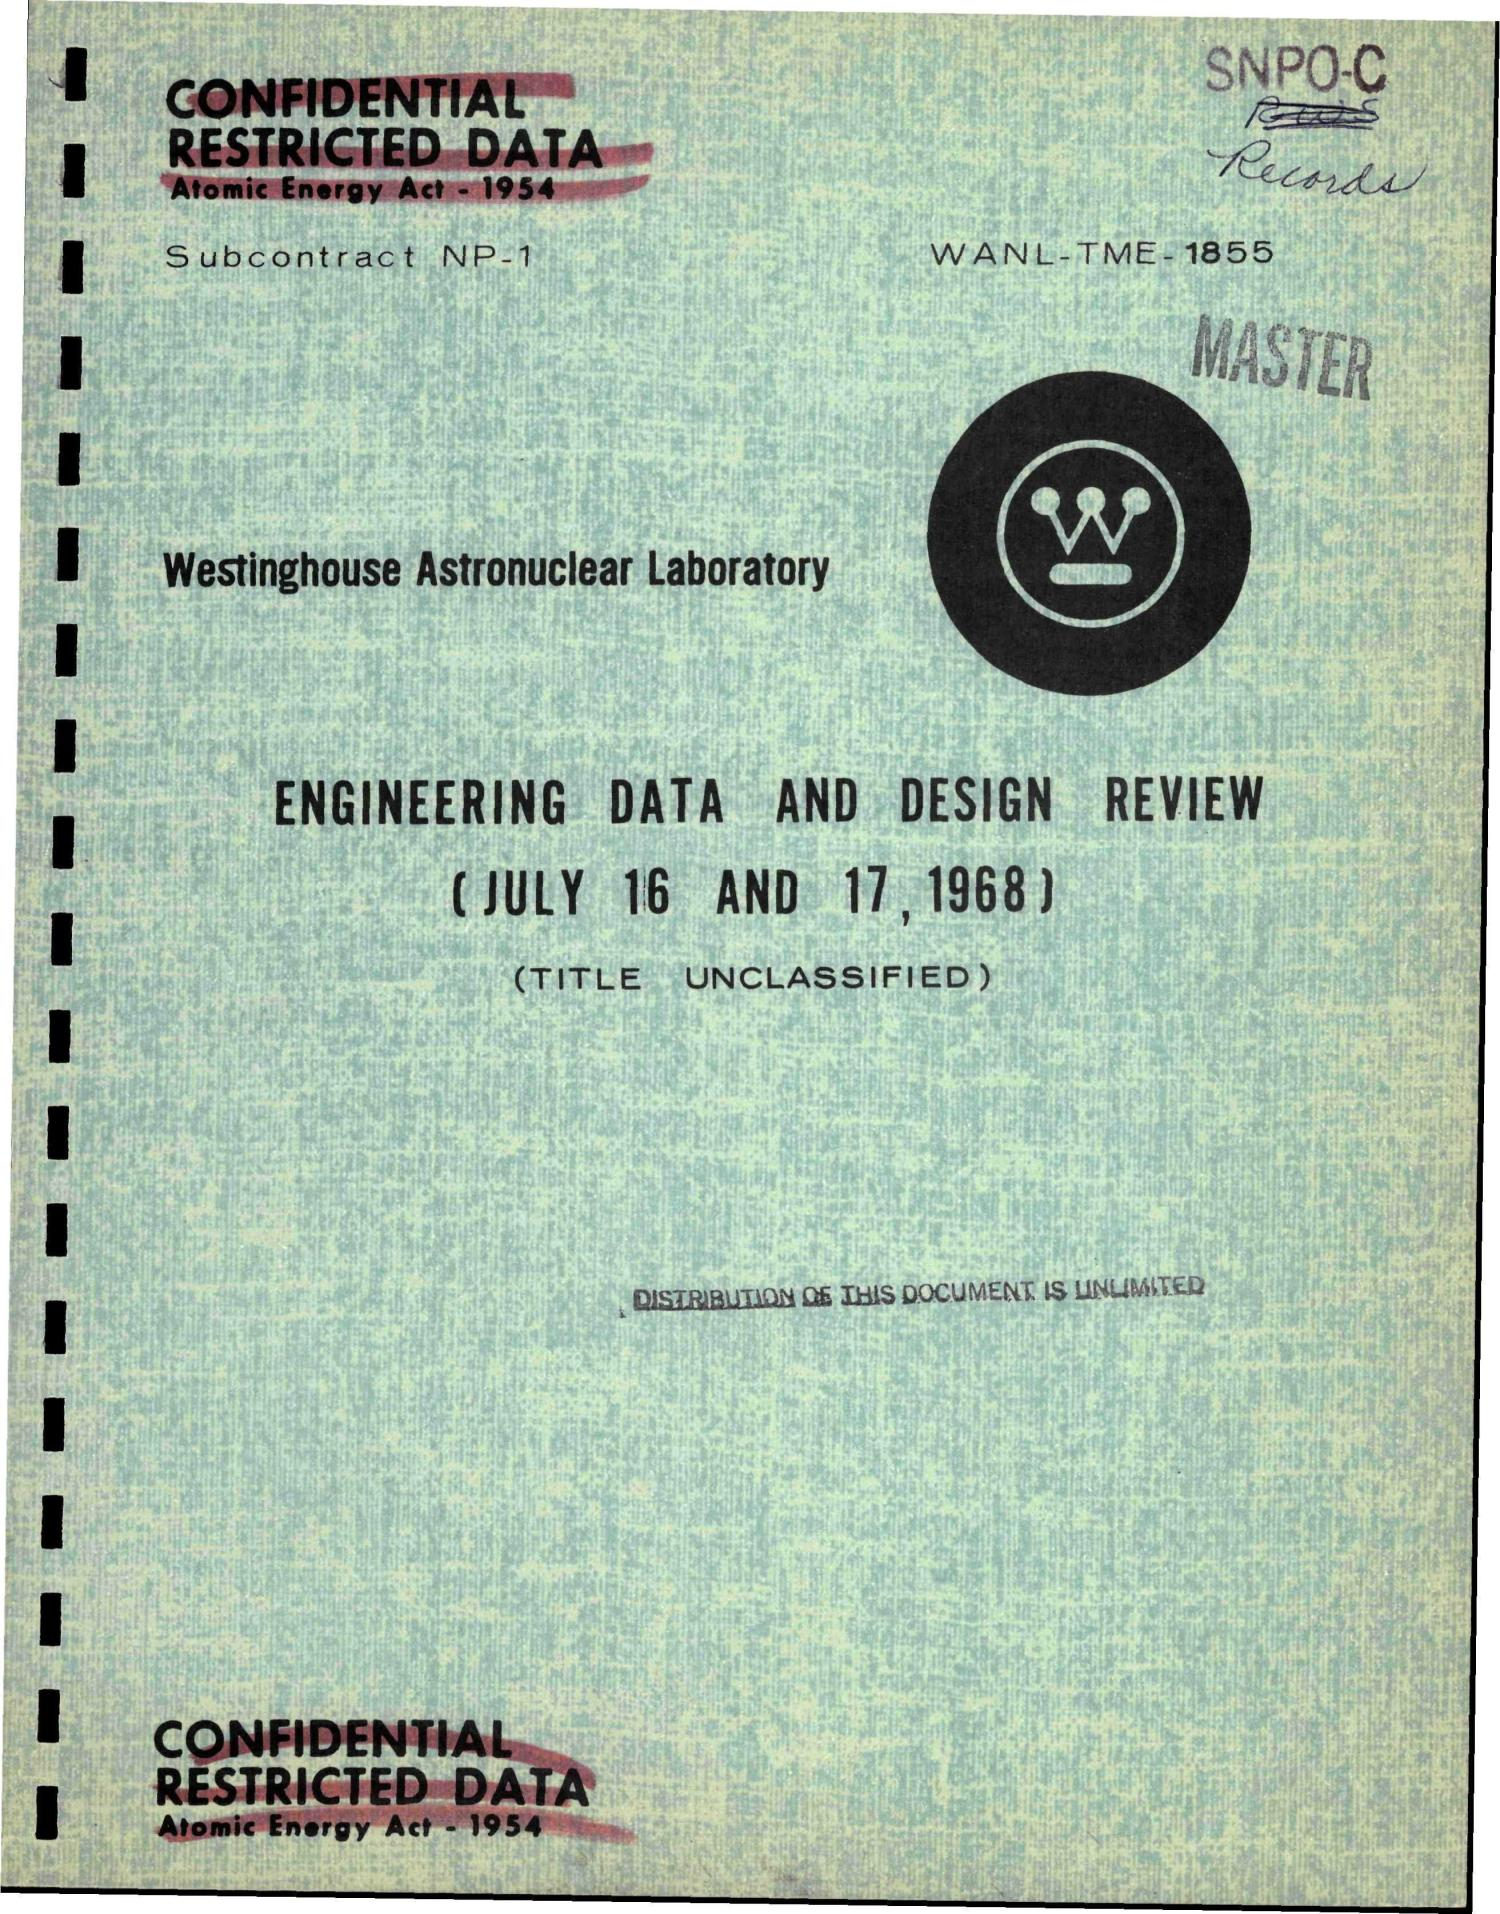 Engineering data and design review (July 16 and 17, 1968)                                                                                                      [Sequence #]: 1 of 478